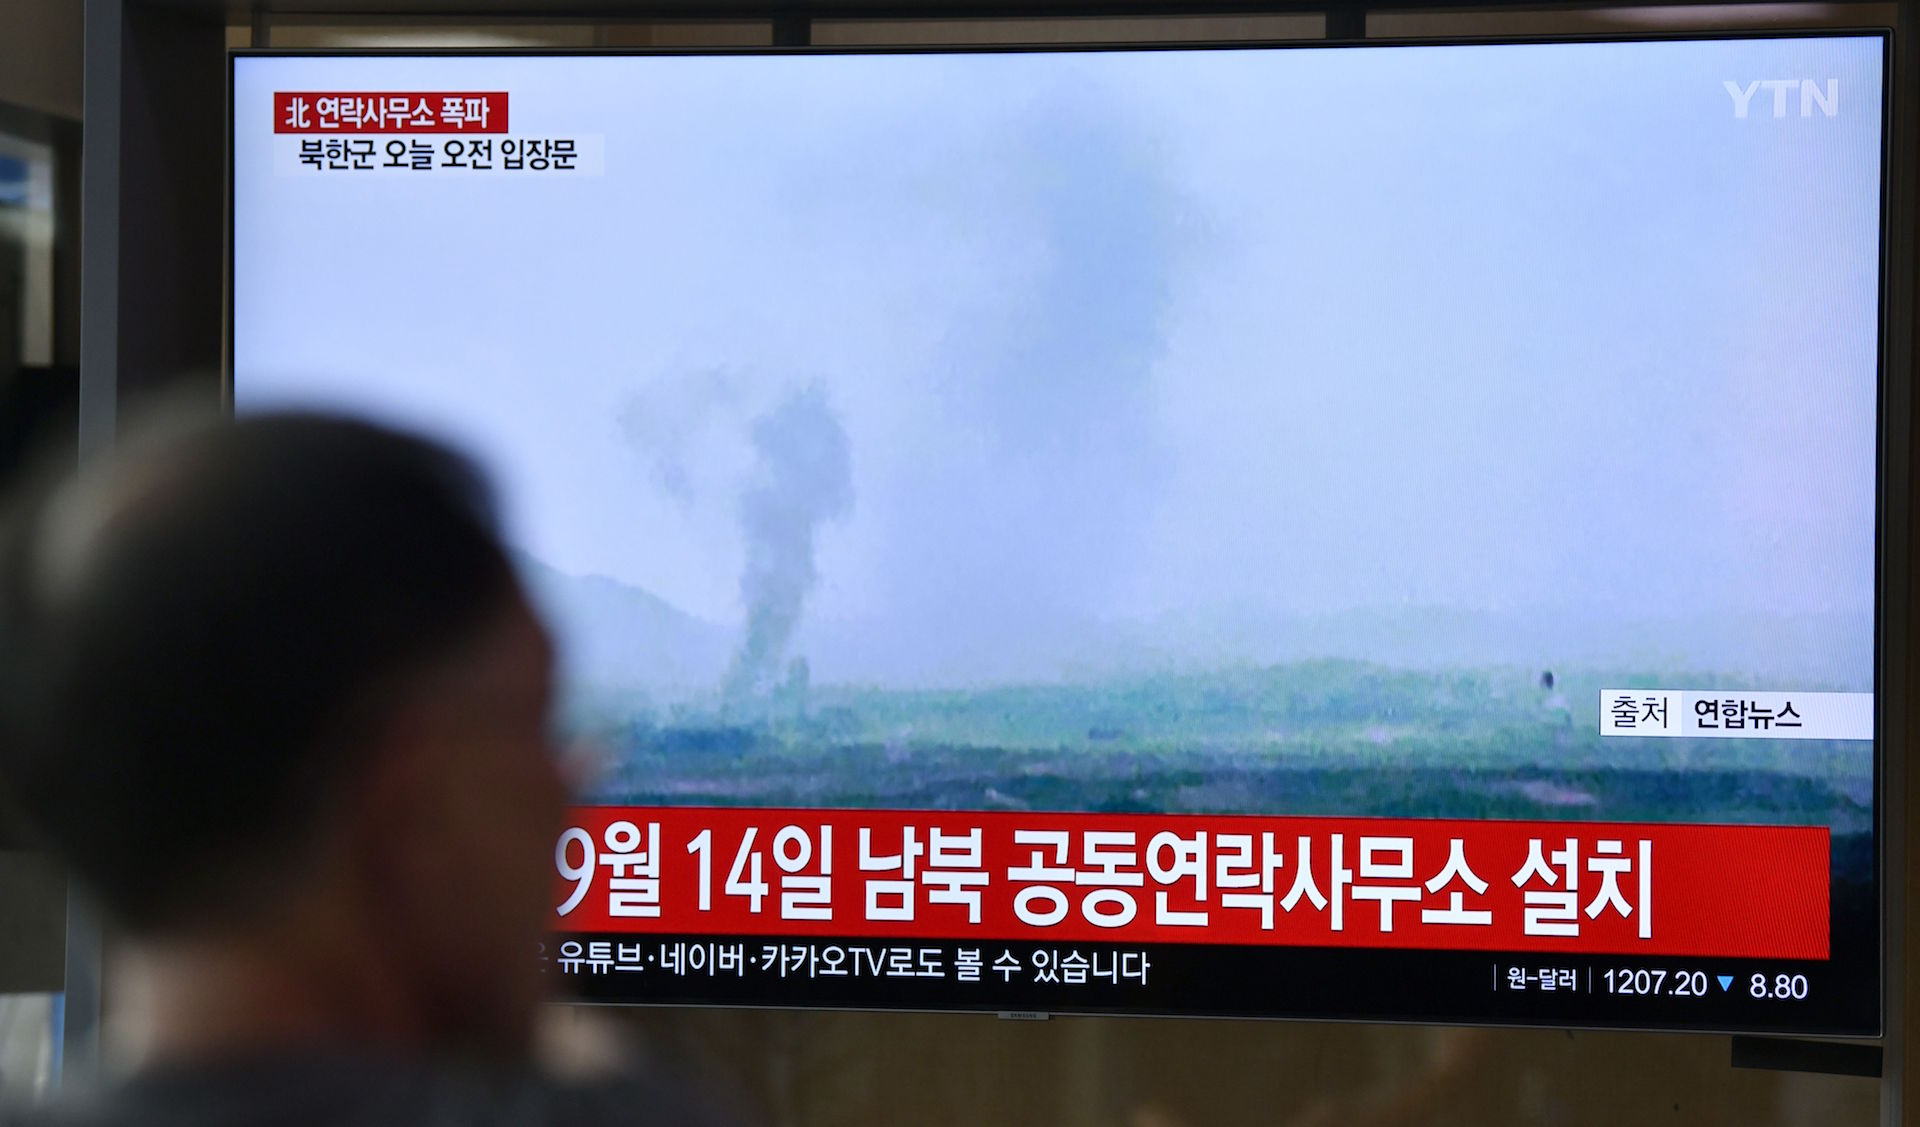 Video Shows North Korea Blowing Up Liaison Office Used for Talks With South Korea